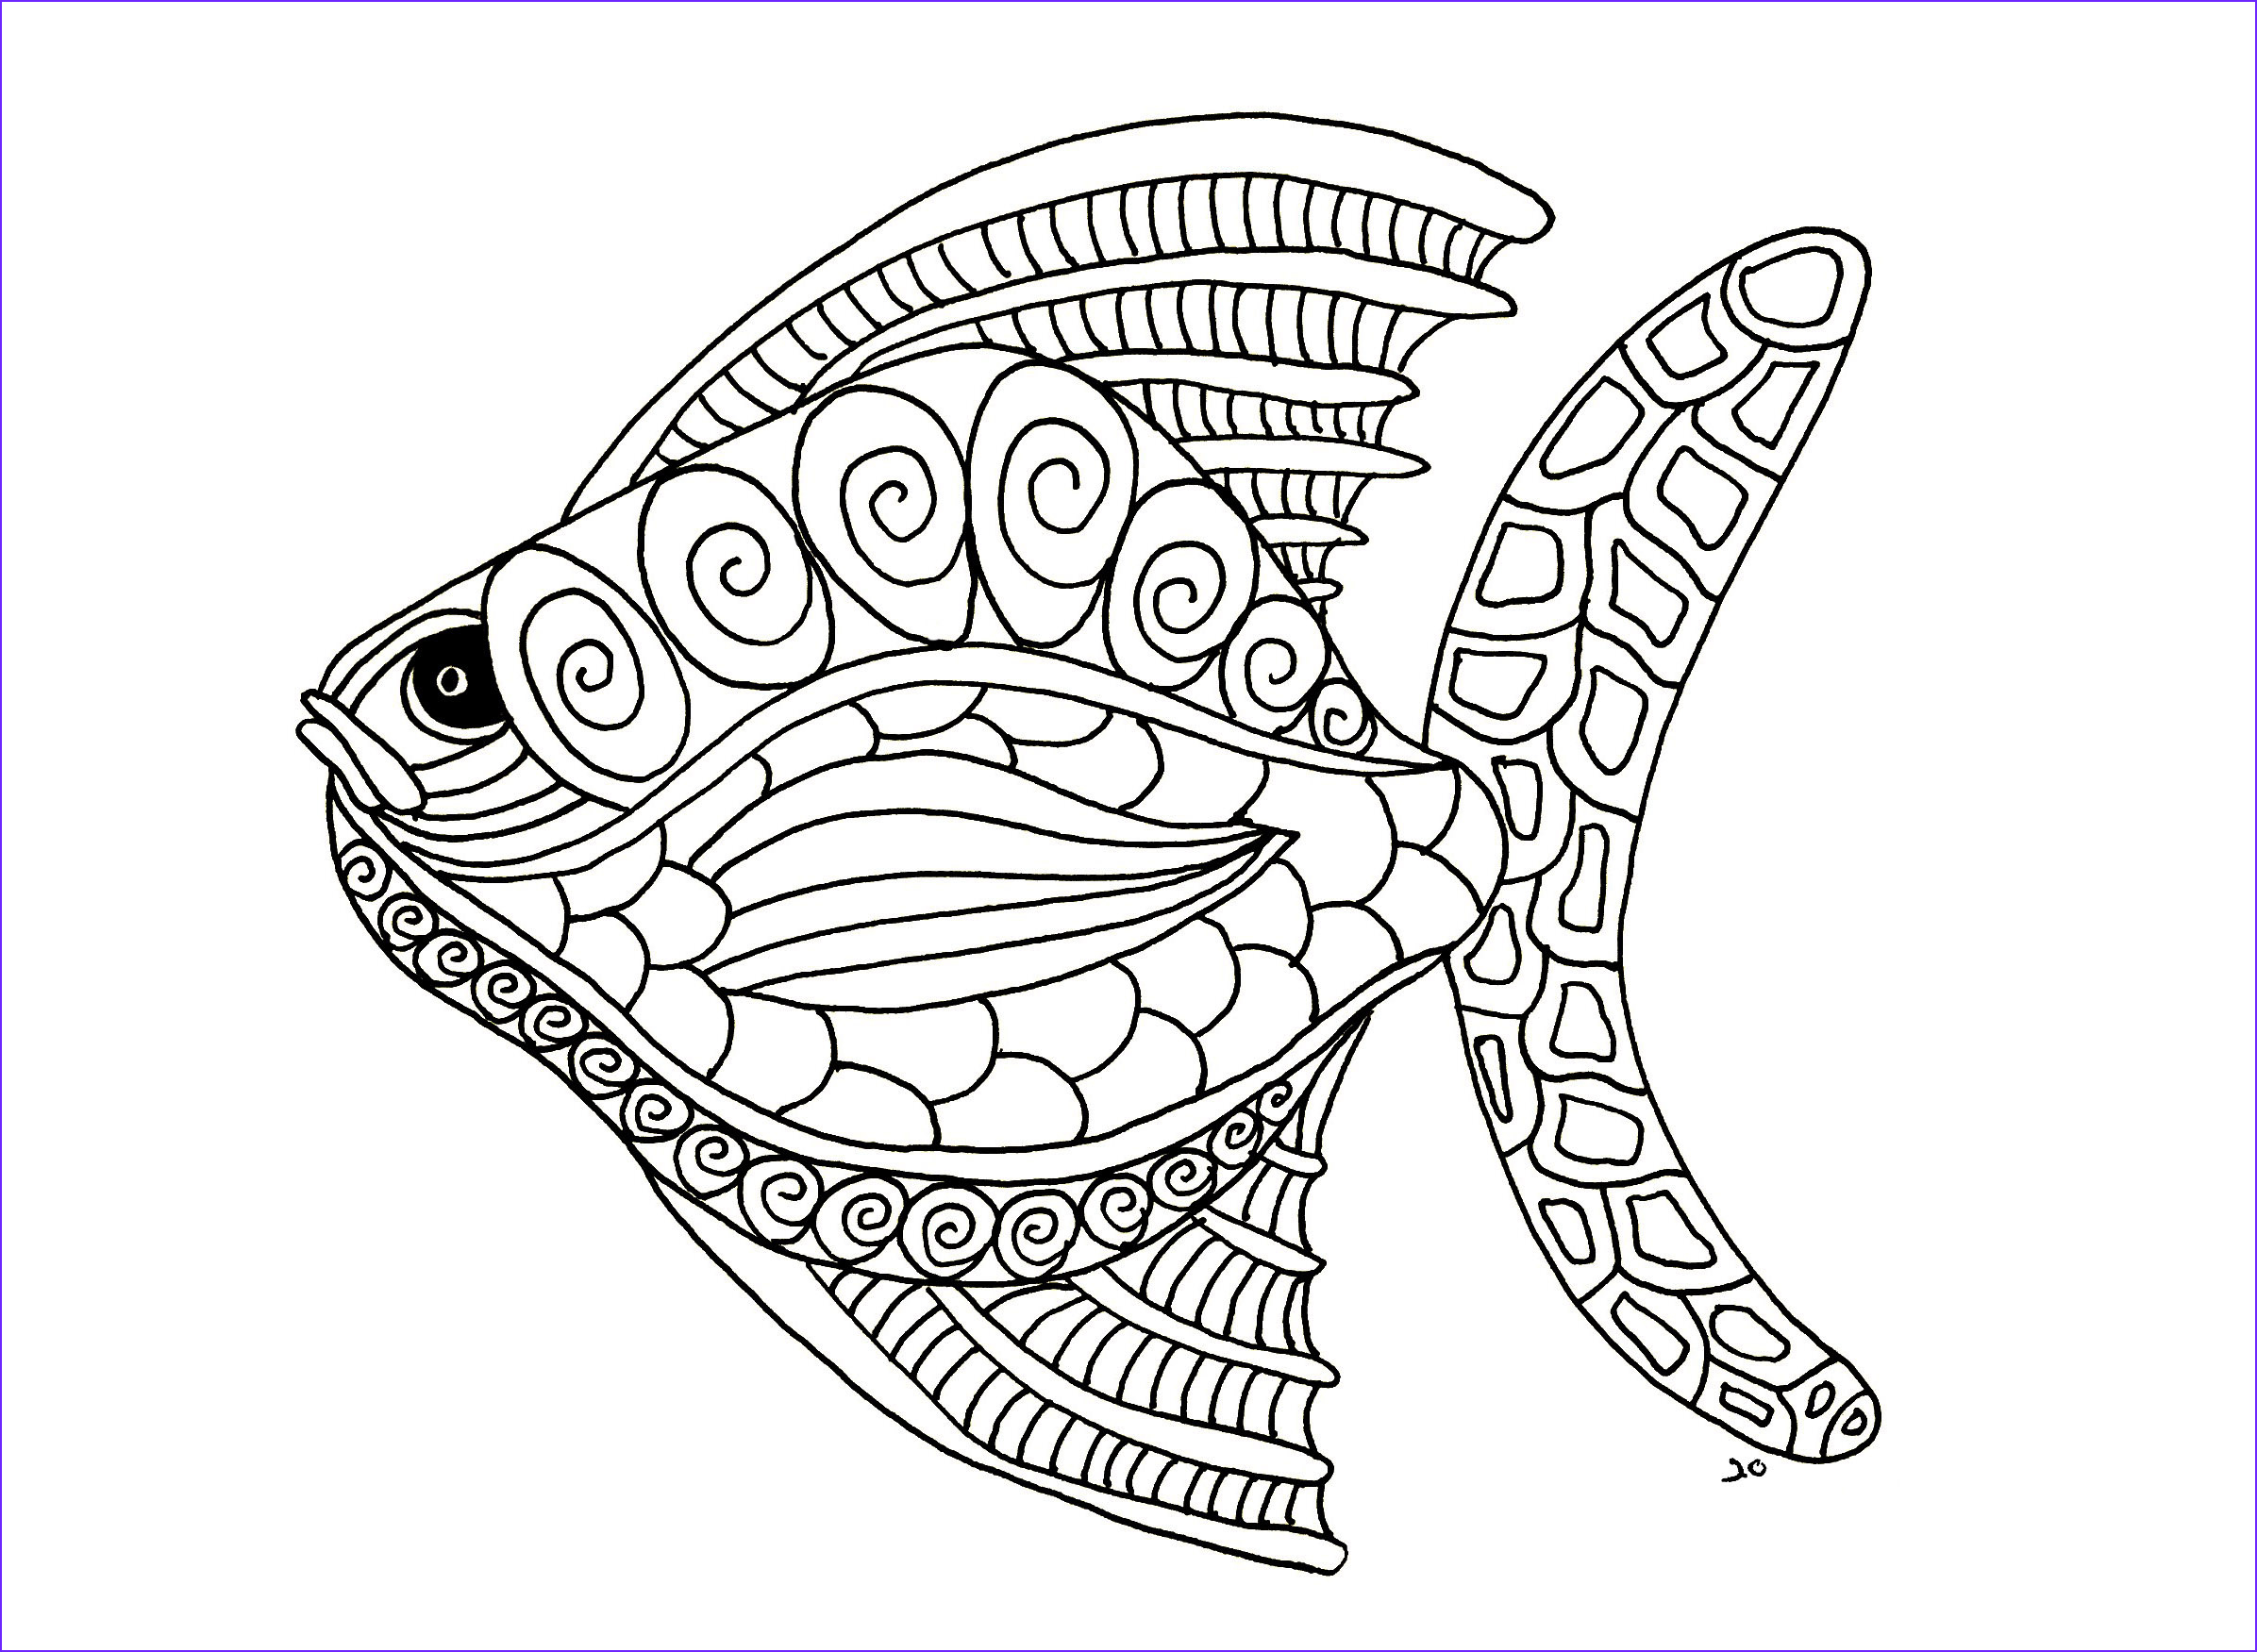 Coloring Adult Unique Collection Adult Coloring Pages Animals Best Coloring Pages for Kids